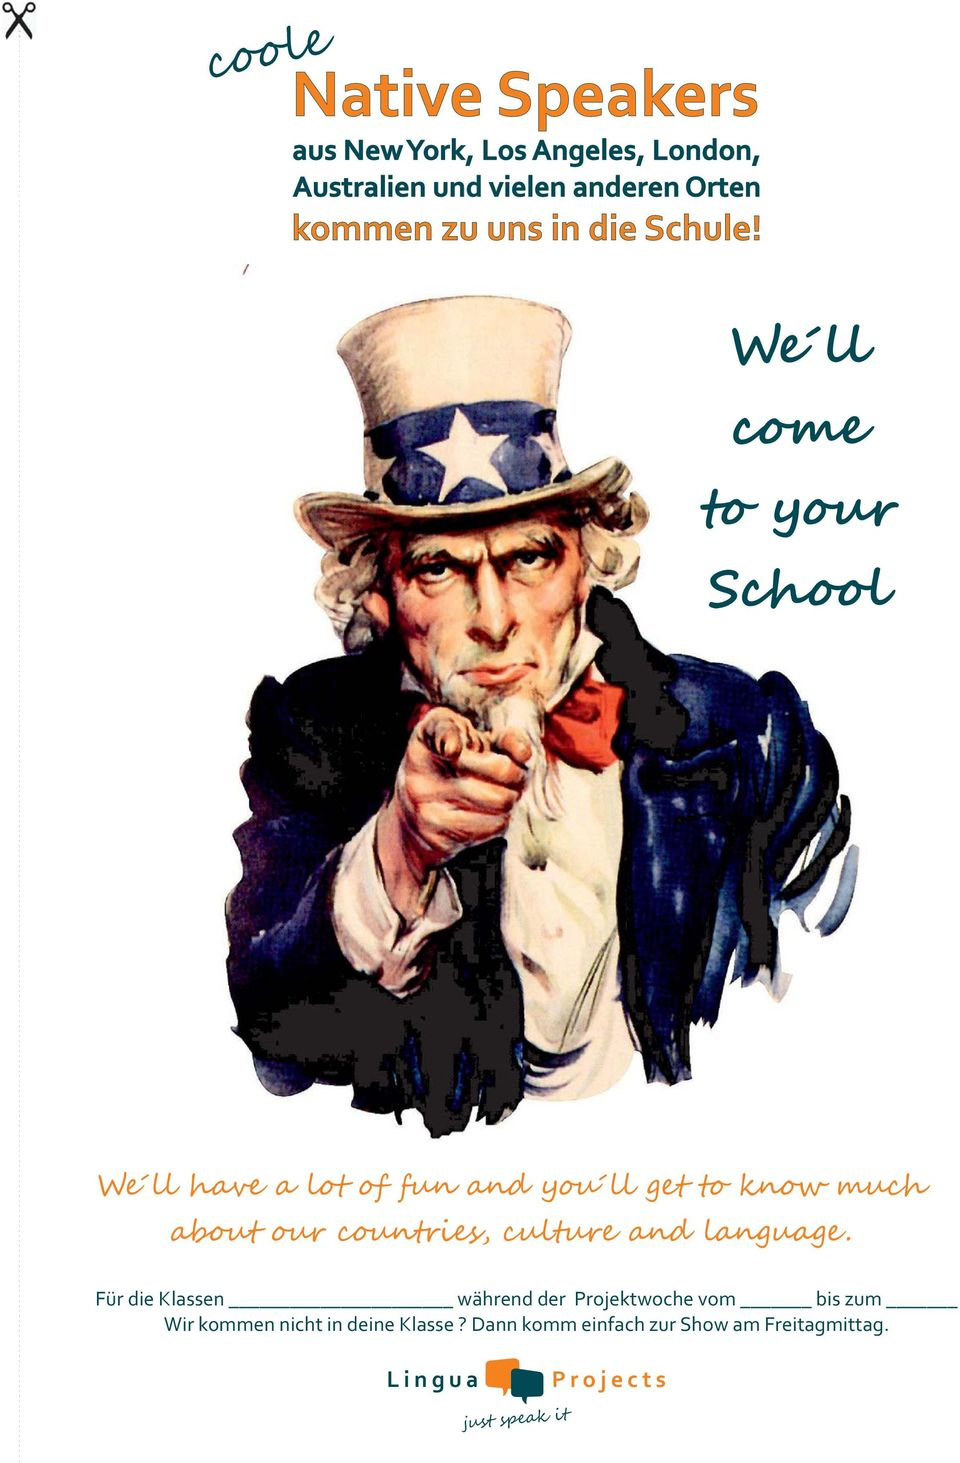 We ll come to your School We ll have a l fun and you ll get to know much about our countries,